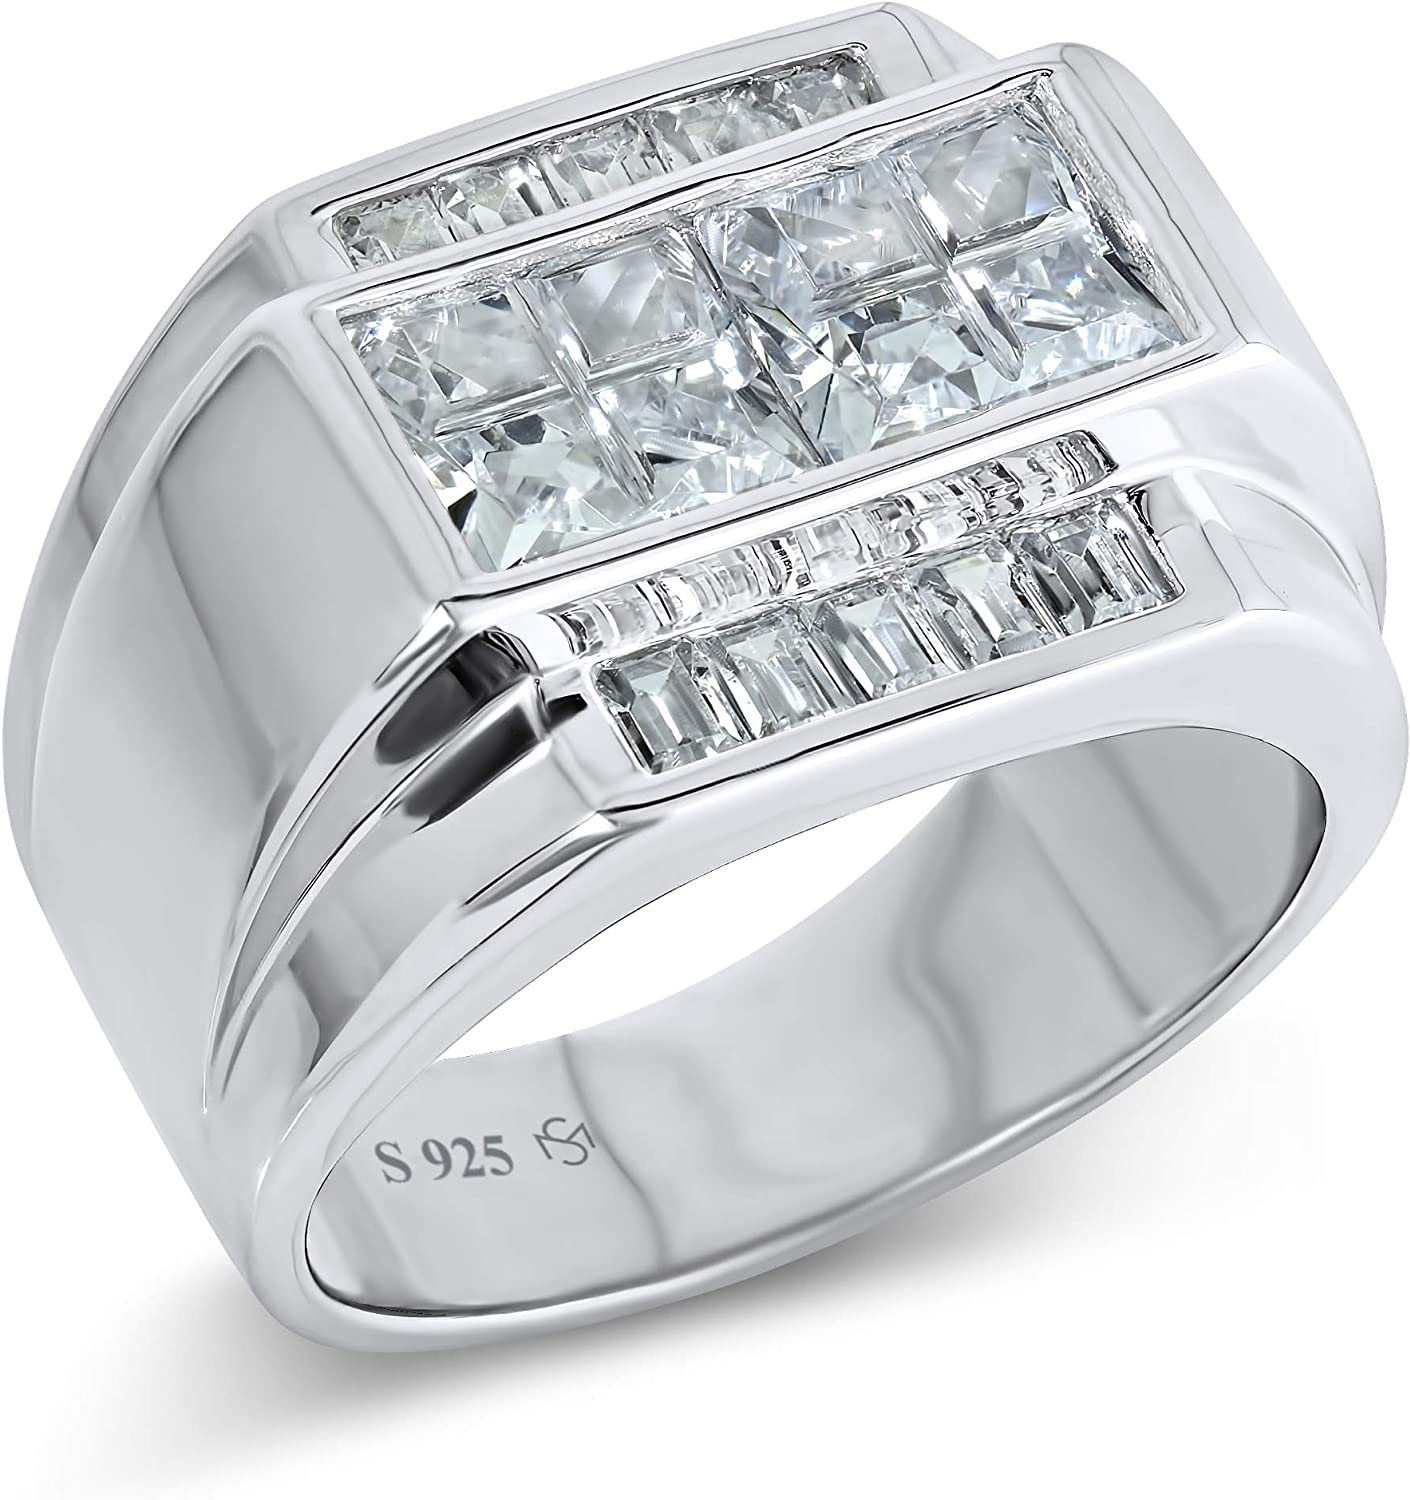 [2-5 Days Delivery] Men's Sterling Silver .925 Ring with White Invisible and Channel Set Cubic Zirconia (CZ) Stones, Platinum Plated. Flashy Eye Catching Ring. Elegant Sterling Silver Jewelry Encrusted with CZs For Men.